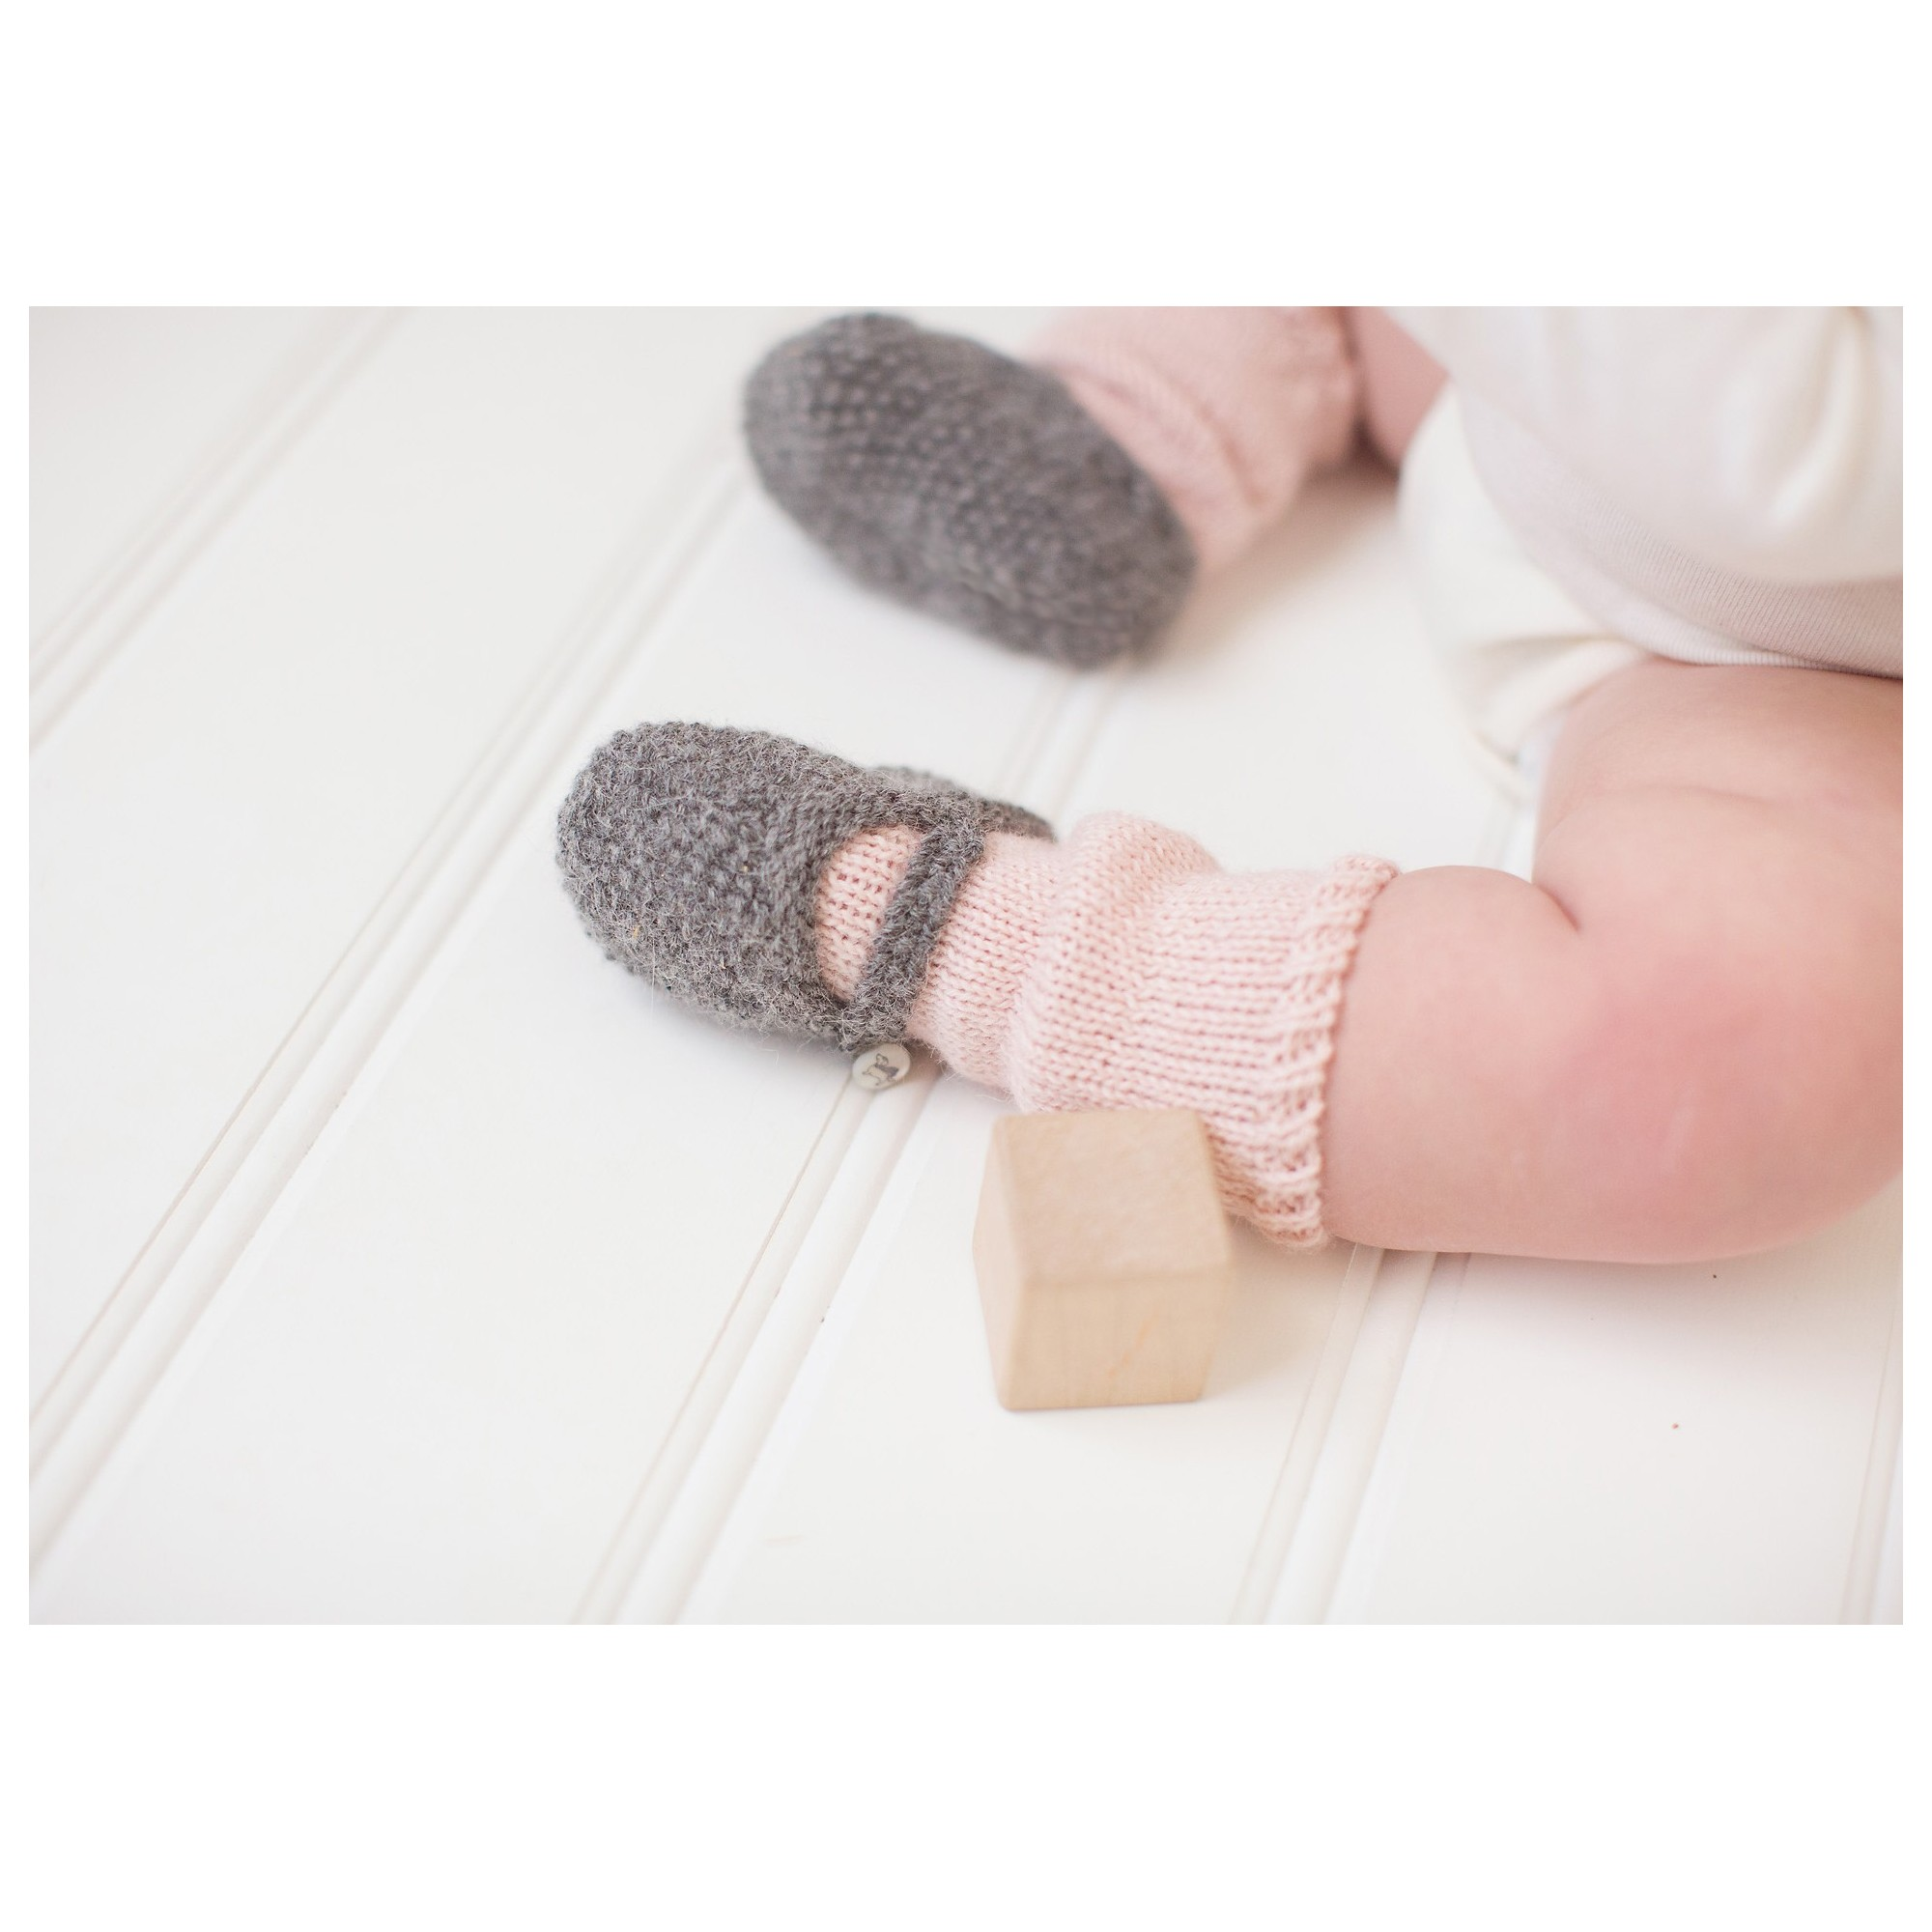 Suzon slippers on baby feet